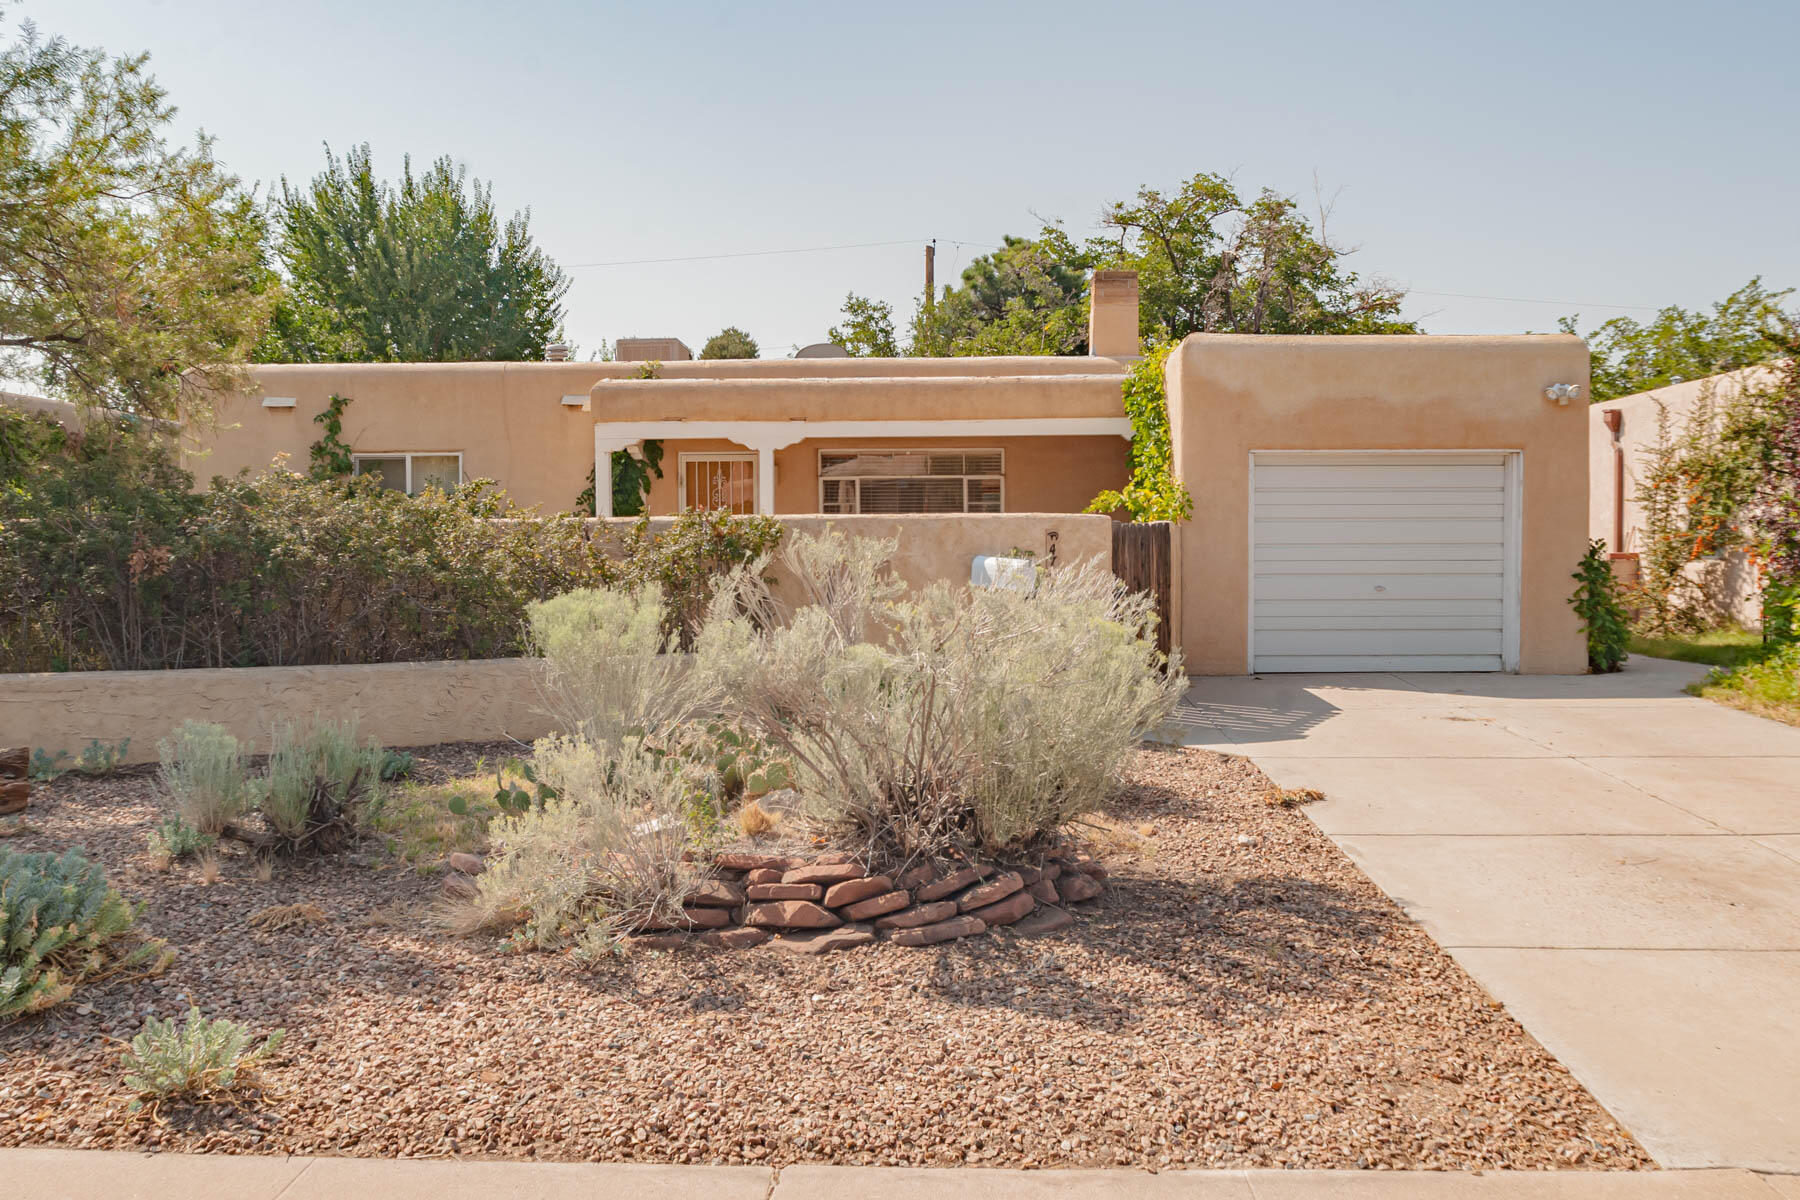 A MUST SEE!!!!!!   Charming sunlit pueblo style home with mature xeriscaped in the front courtyard.  Harwood floors throughout the home. Quaint kitchen with a dishwasher and nice counter space. Thermal windows in most of the rooms.  Pella wooden atrium doors in the dining room that led out the inviting backyard with covered patio.  Home located on a non-through street. Enjoy the beautiful mountain views from the courtyard. Comes with washer/dryer.